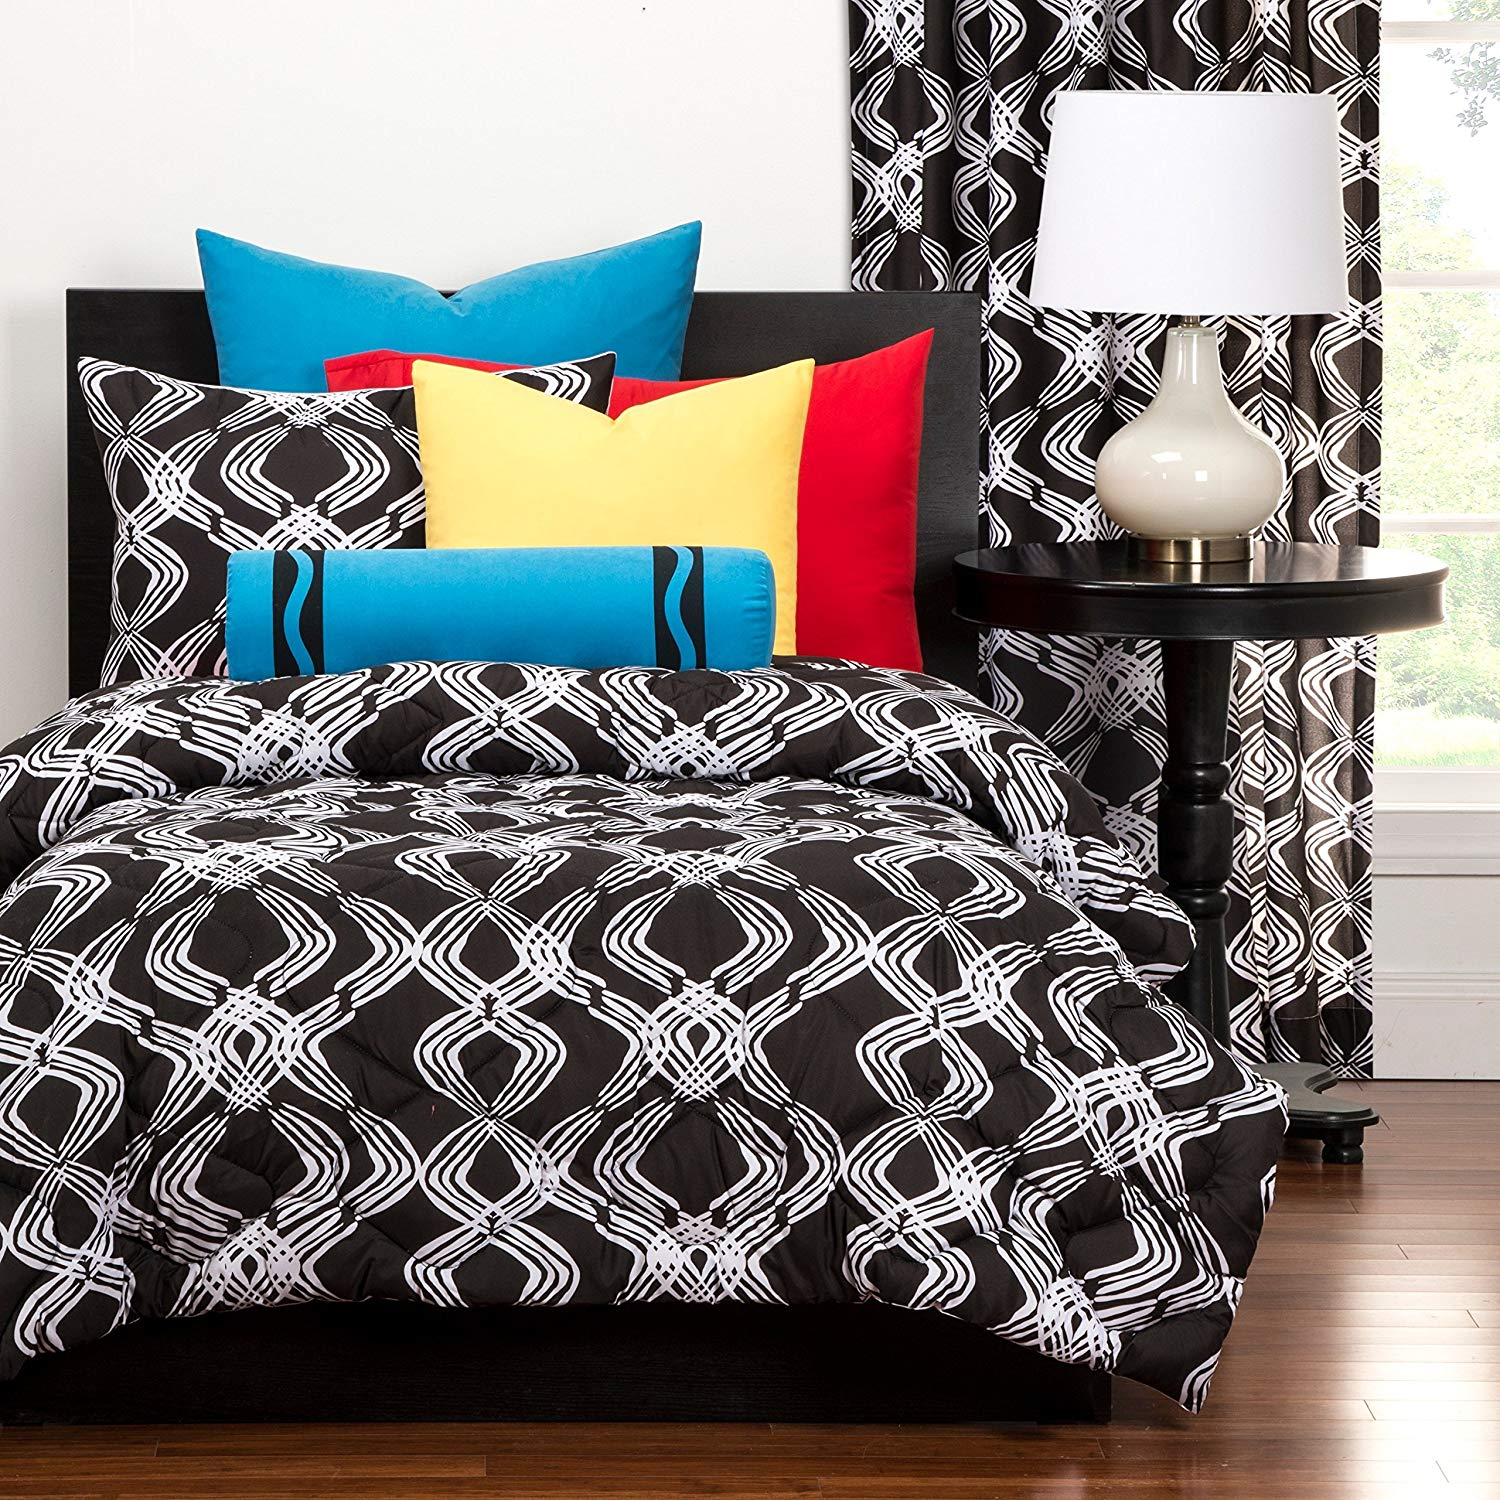 LO 3 Piece Girls Black White Graphic Printed Comforter Set Full Queen, Dark Black Geometric Stripes All Over Printed Adult Bedding Master Bedroom Casual Colorful Contemporary, Microfiber